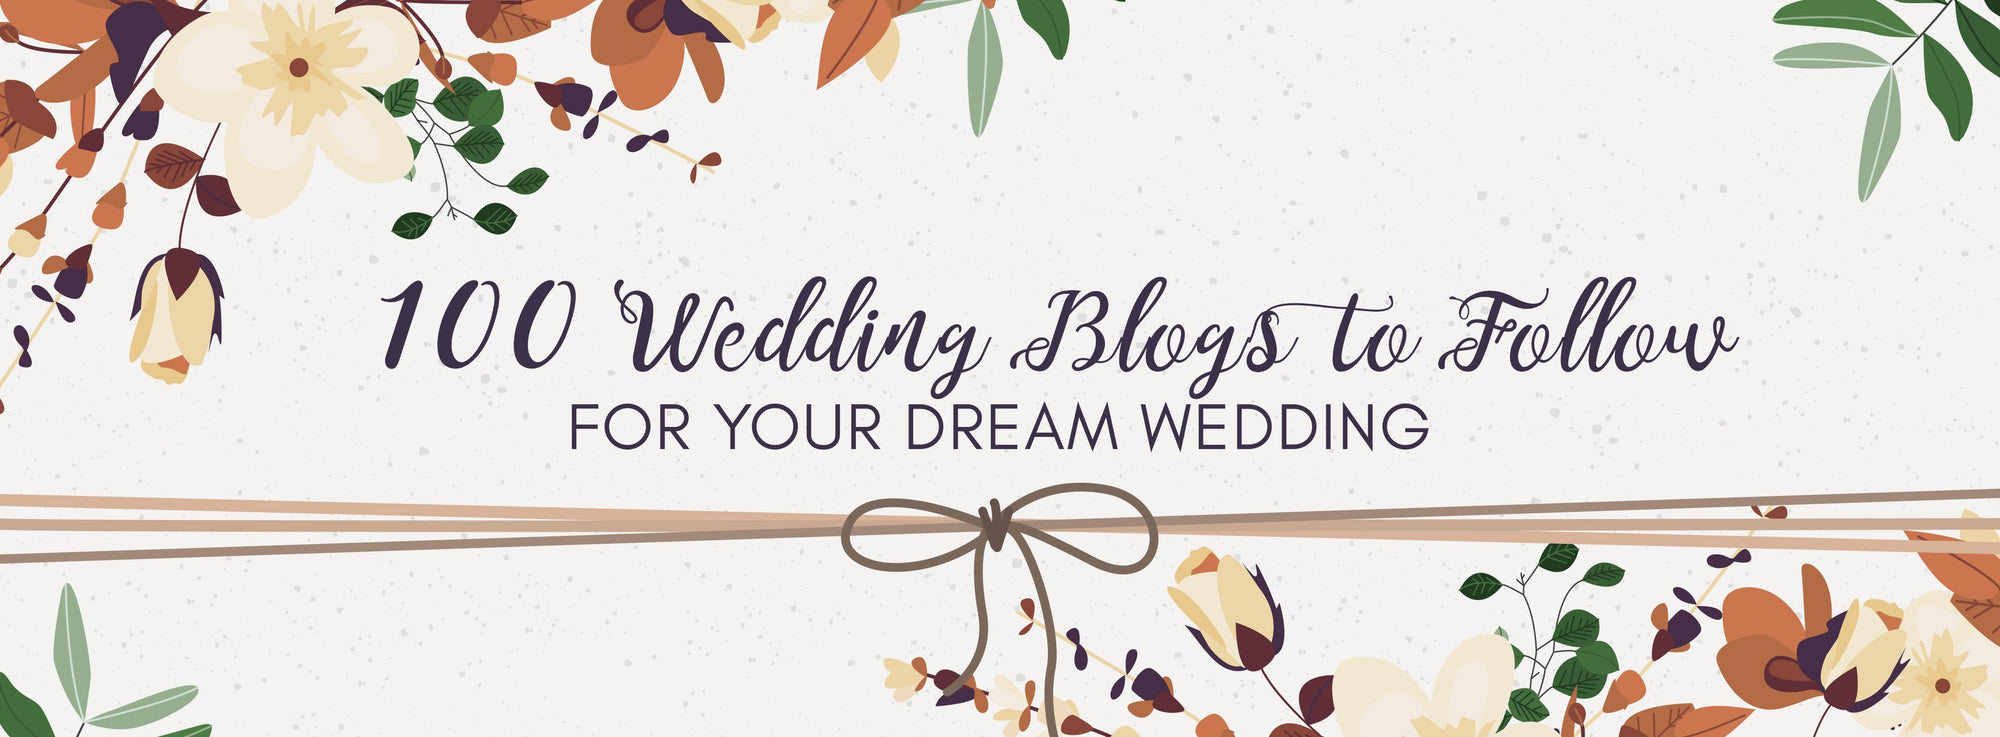 Top 100 Wedding Blogs to Follow for Your Dream Wedding